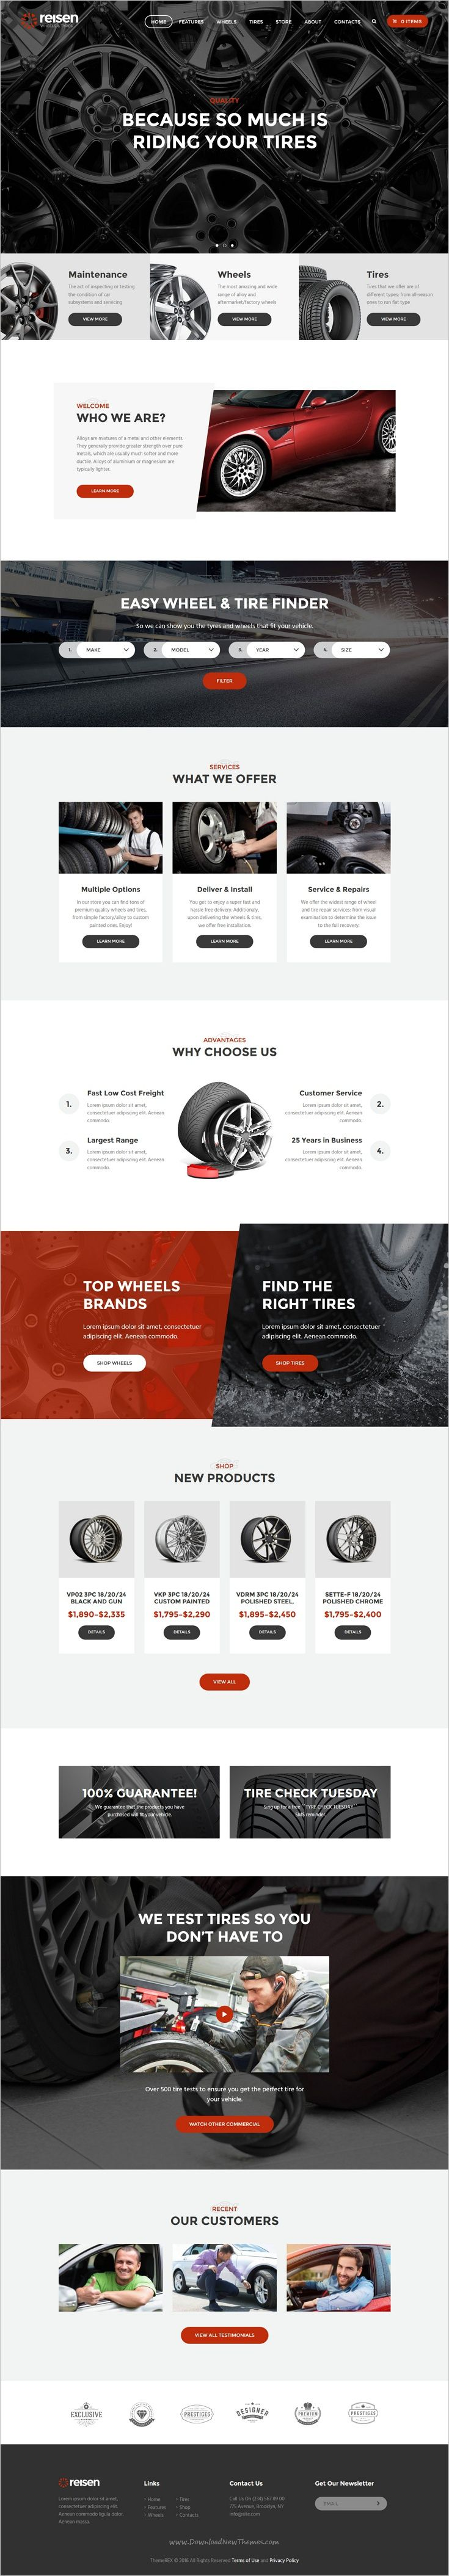 Reisen is a unique and modern design responsive #WordPress theme for #tires #wheels, car #repair shops or garages website with 4 different homepage layouts download now➩ https://themeforest.net/item/reisen-automechanic-car-repair-theme/18891512?ref=Datasata